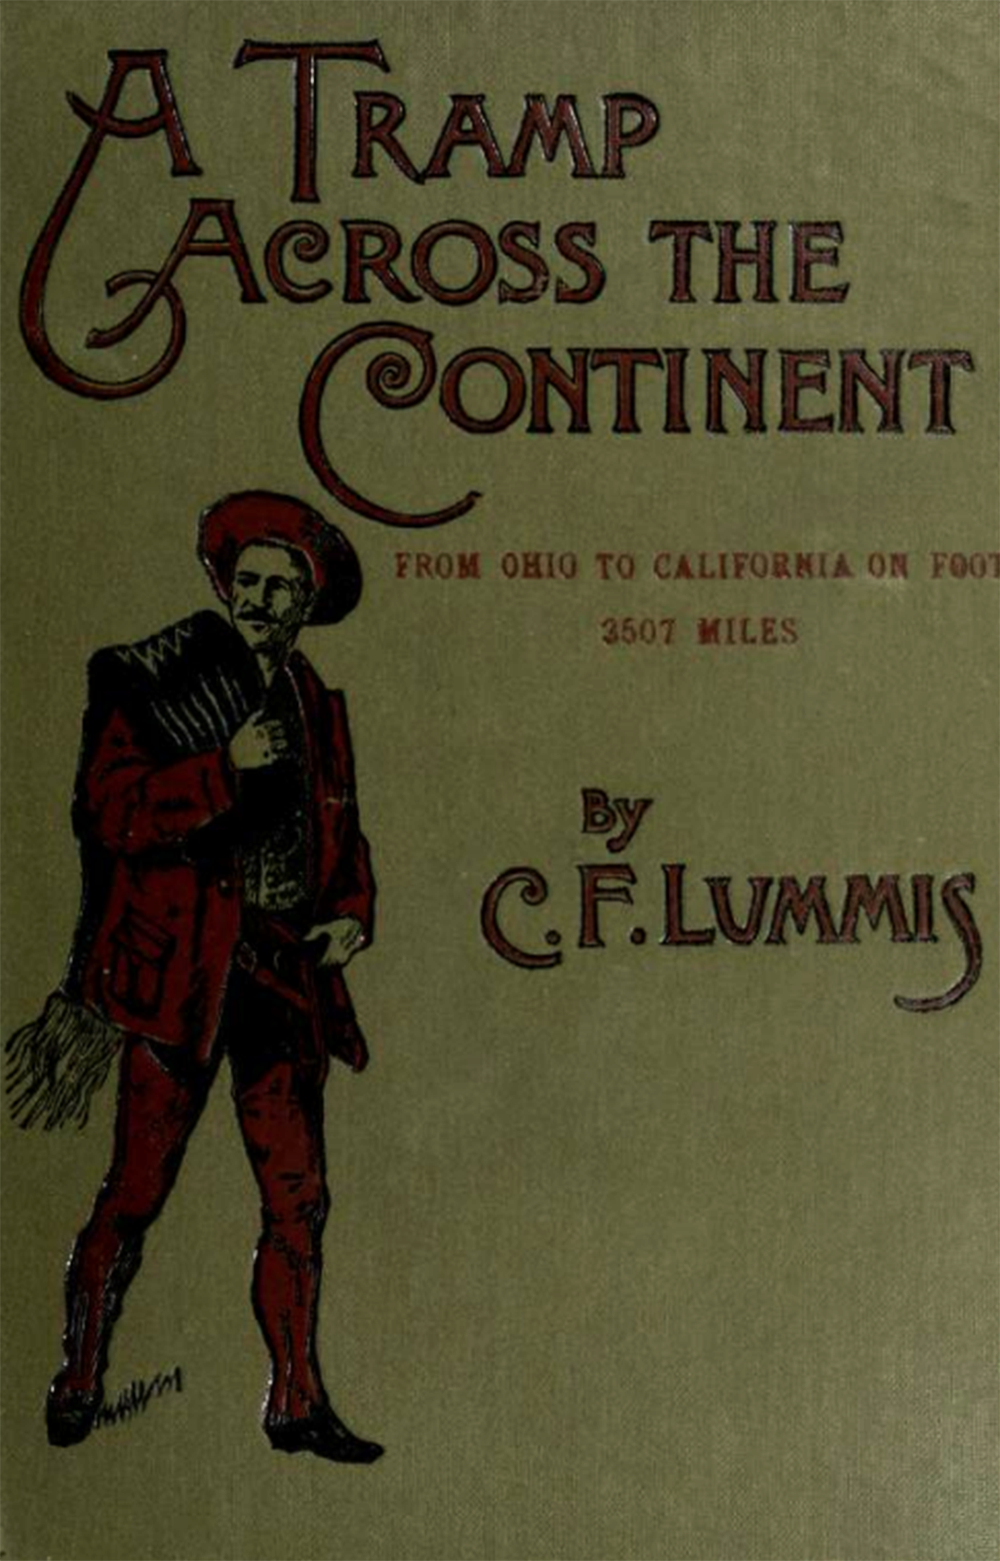 """""""A Tramp Across the Continent,"""" by Charles Lummis, 1893. University of California Libraries."""